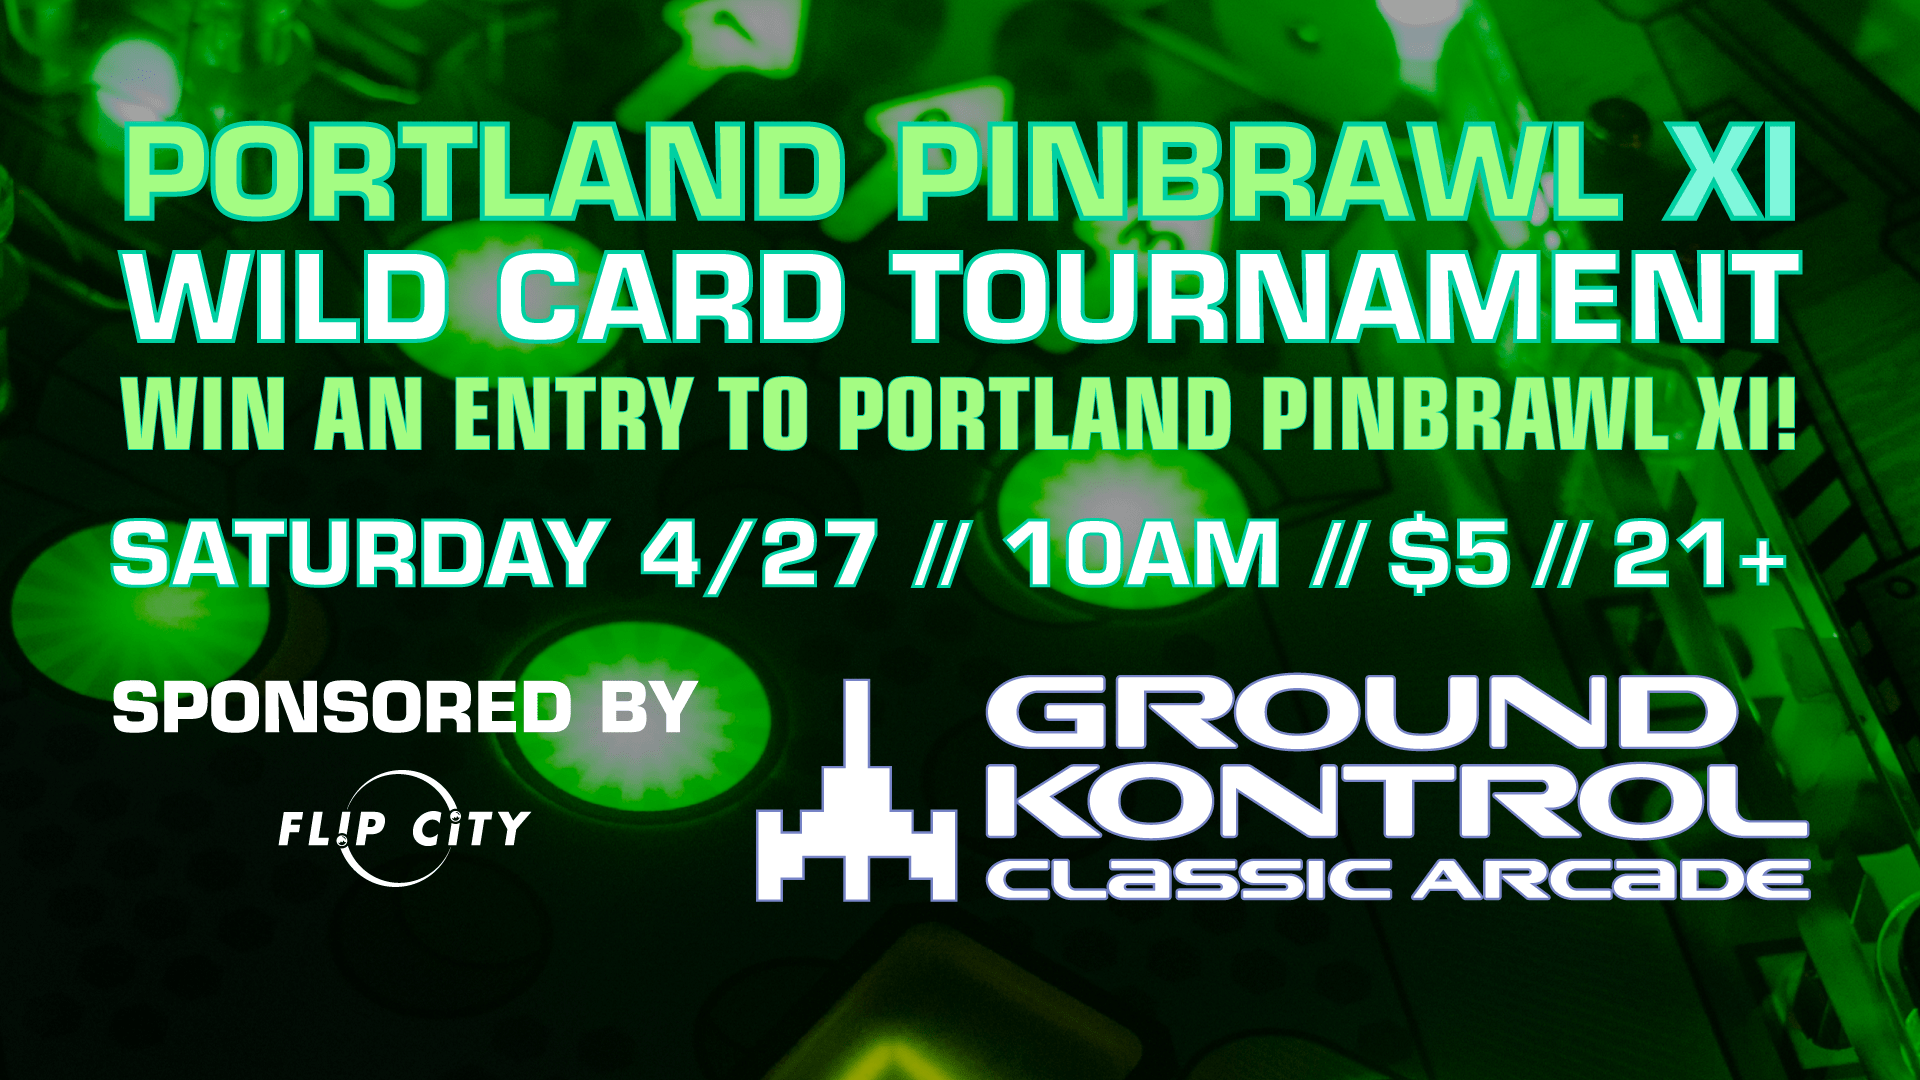 Portland Pinbrawl XI – Our 11th Annual Pinball Tournament – Sunday 4/28